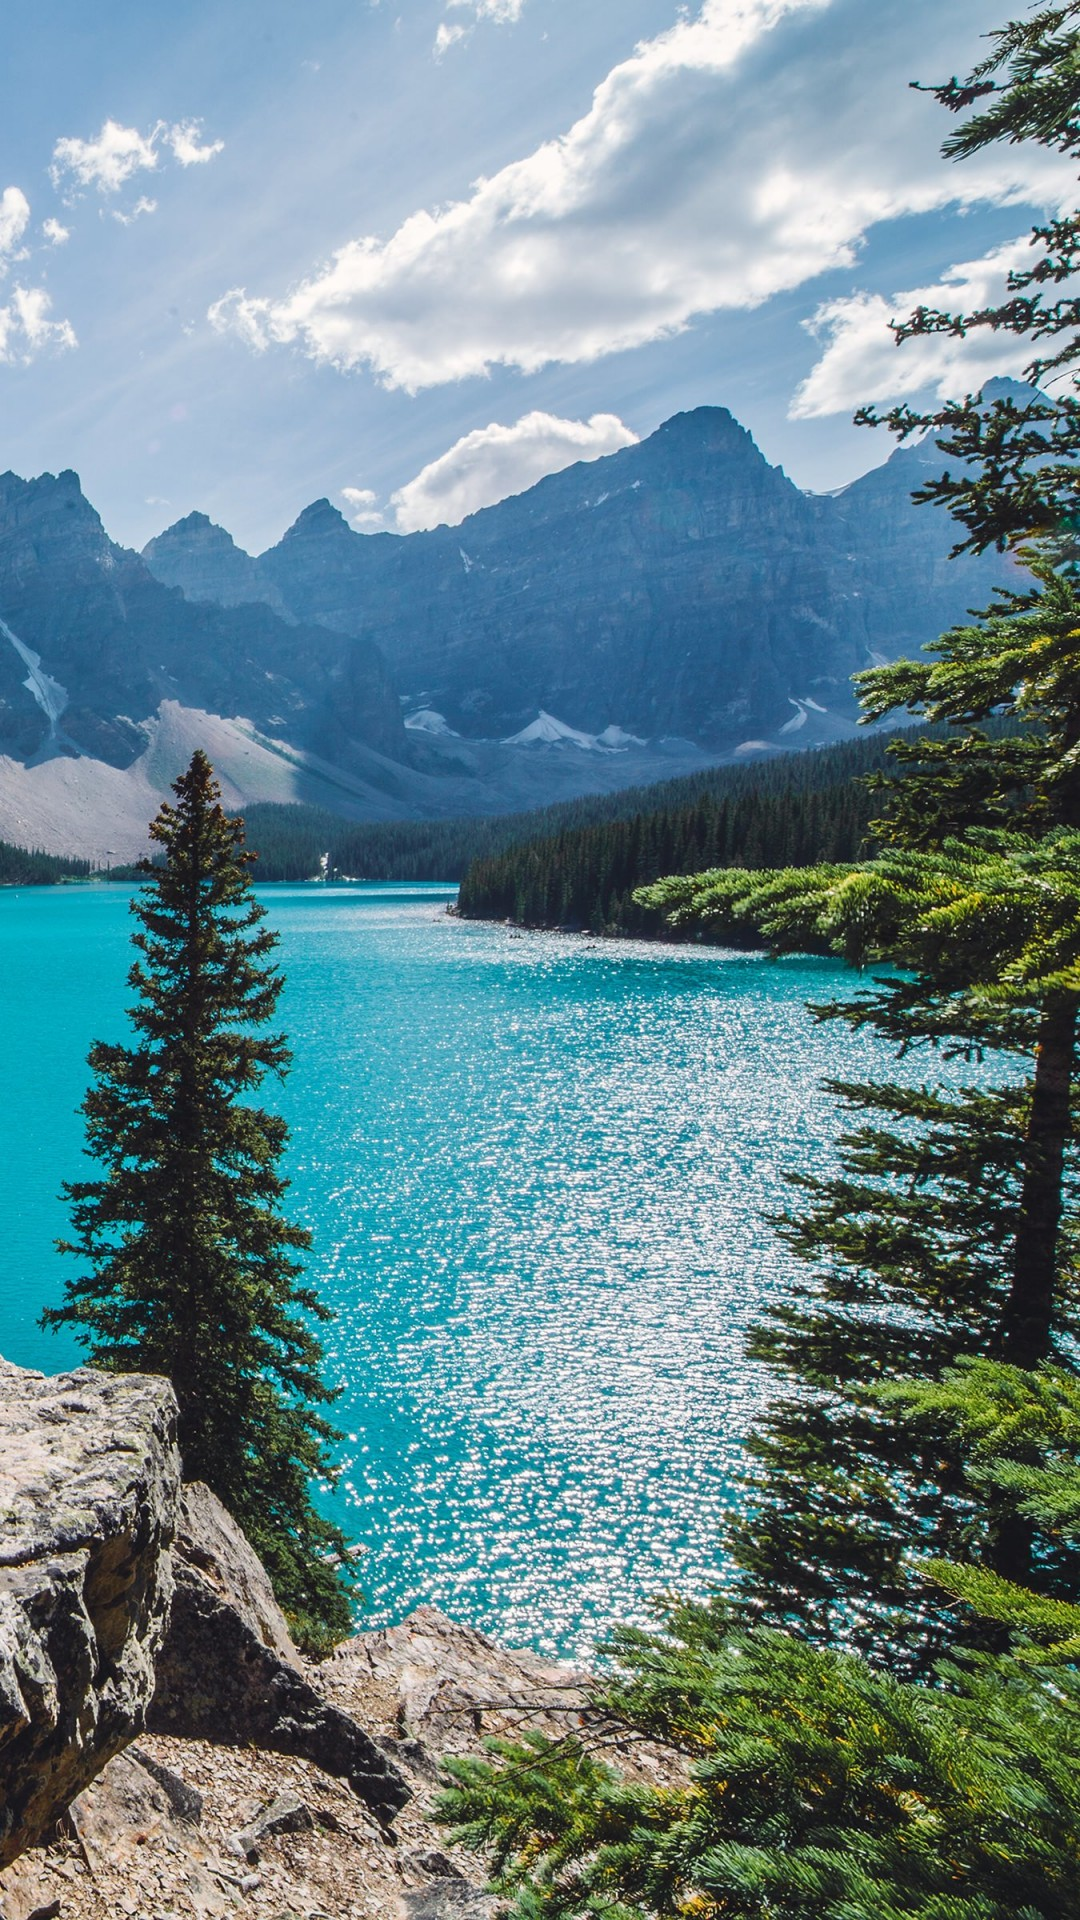 Sunny day over Moraine Lake Wallpaper for SONY Xperia Z3